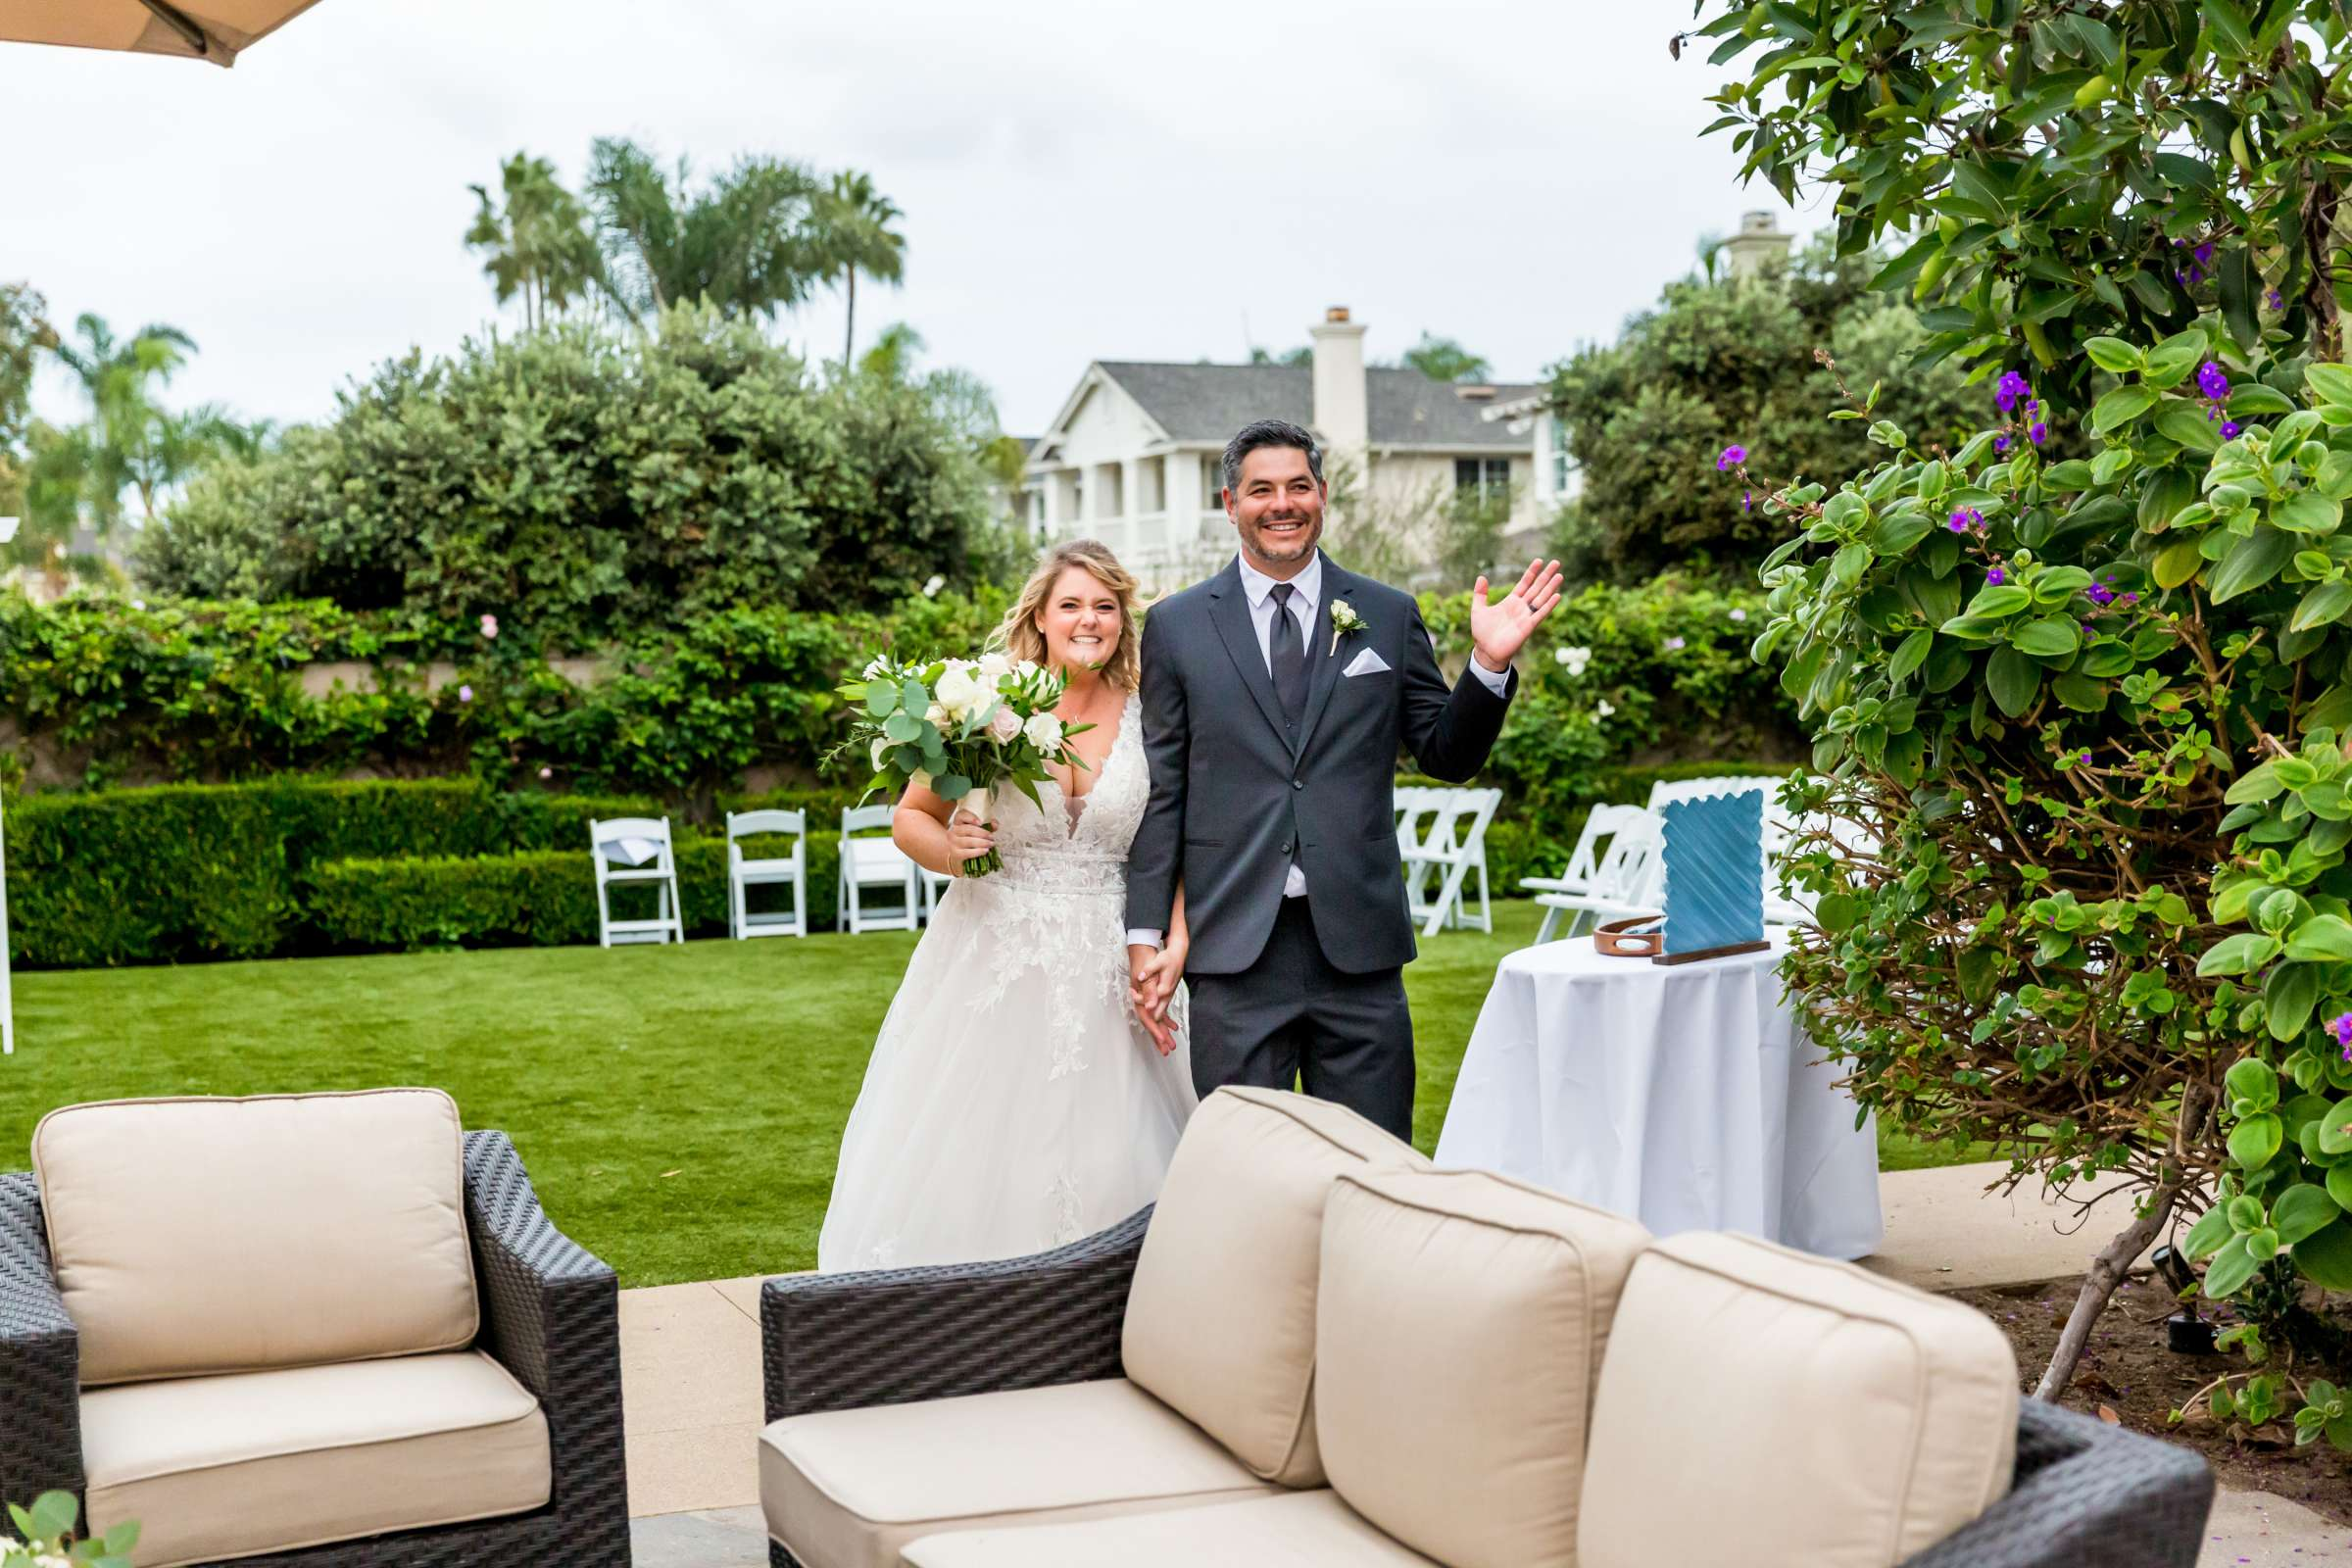 Cape Rey Carlsbad, A Hilton Resort Wedding, Michelle and Justin Wedding Photo #77 by True Photography